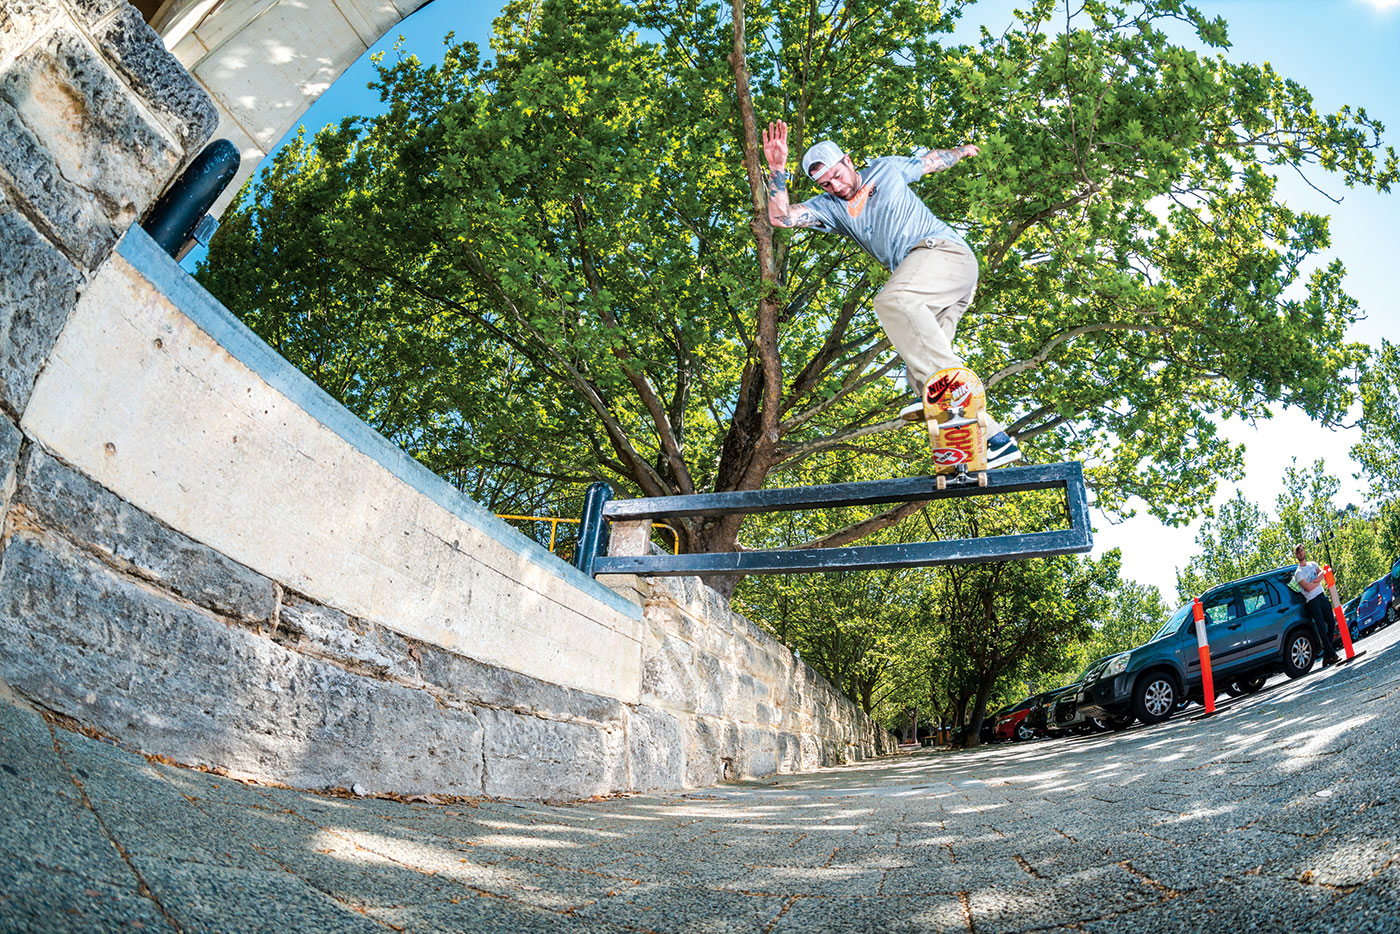 Switch backside tailslide, Perth